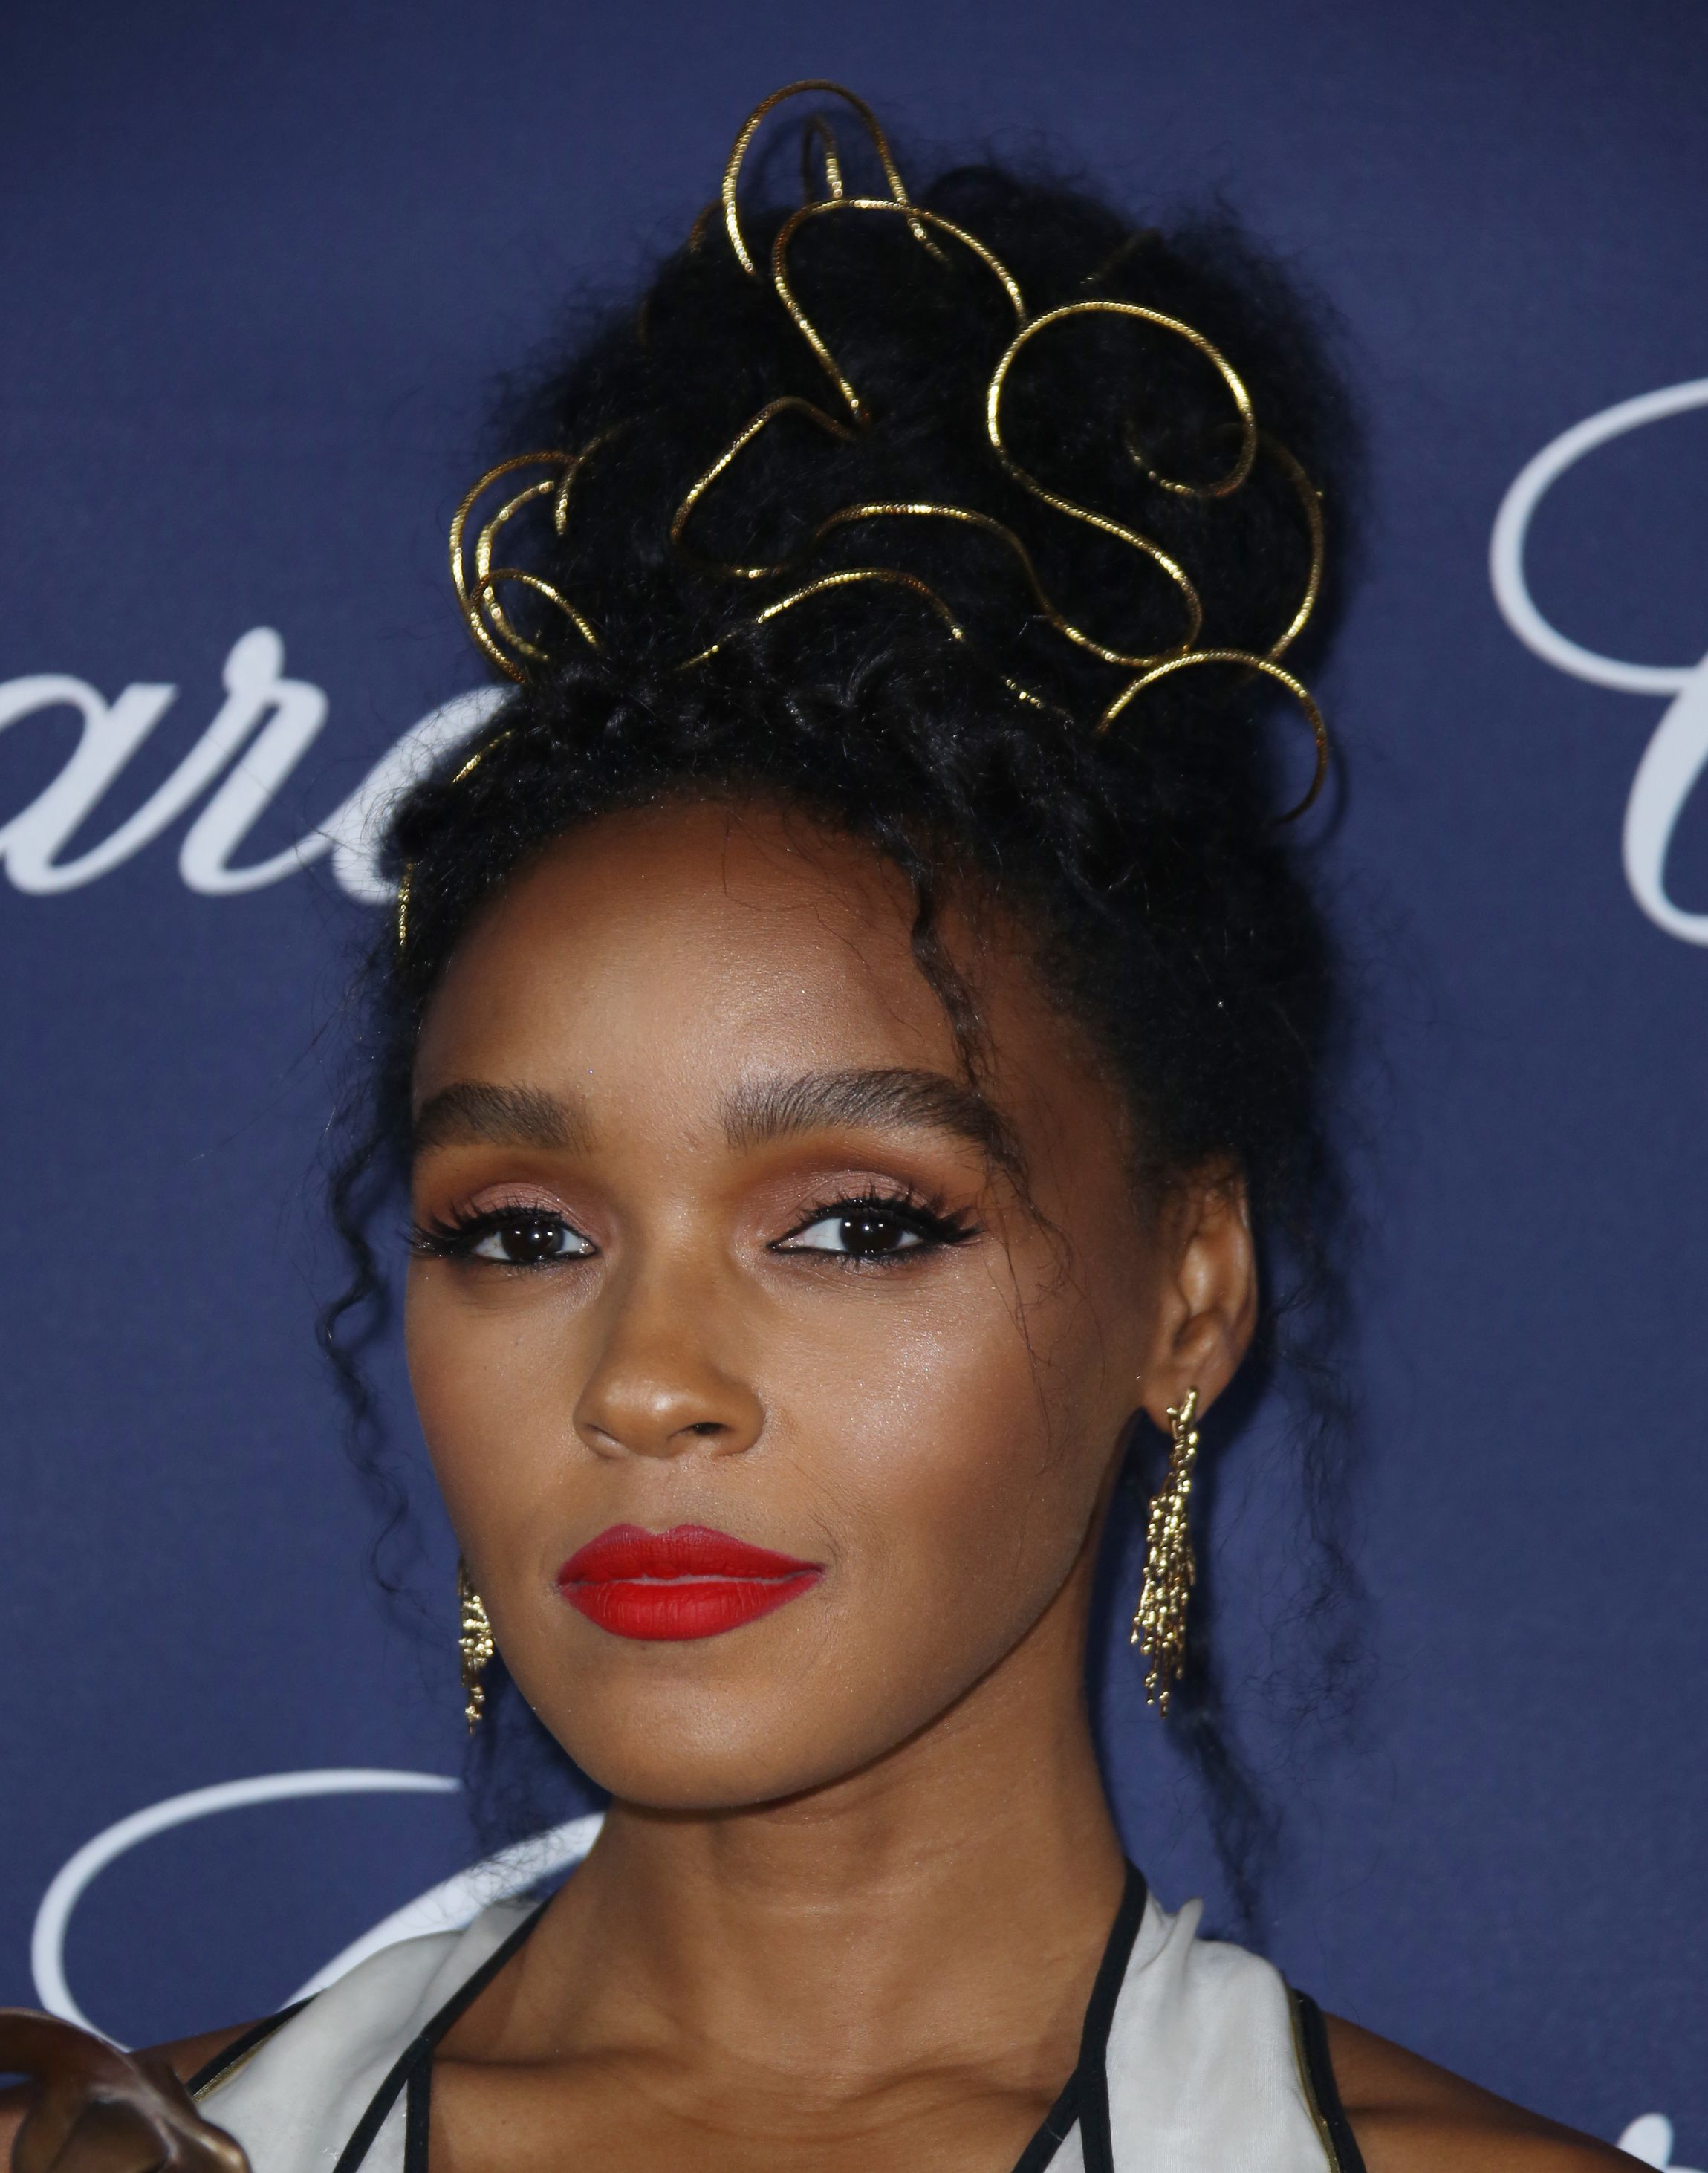 Janelle Monae wearing her hair in an updo on the red carpet with gold wires weaved in